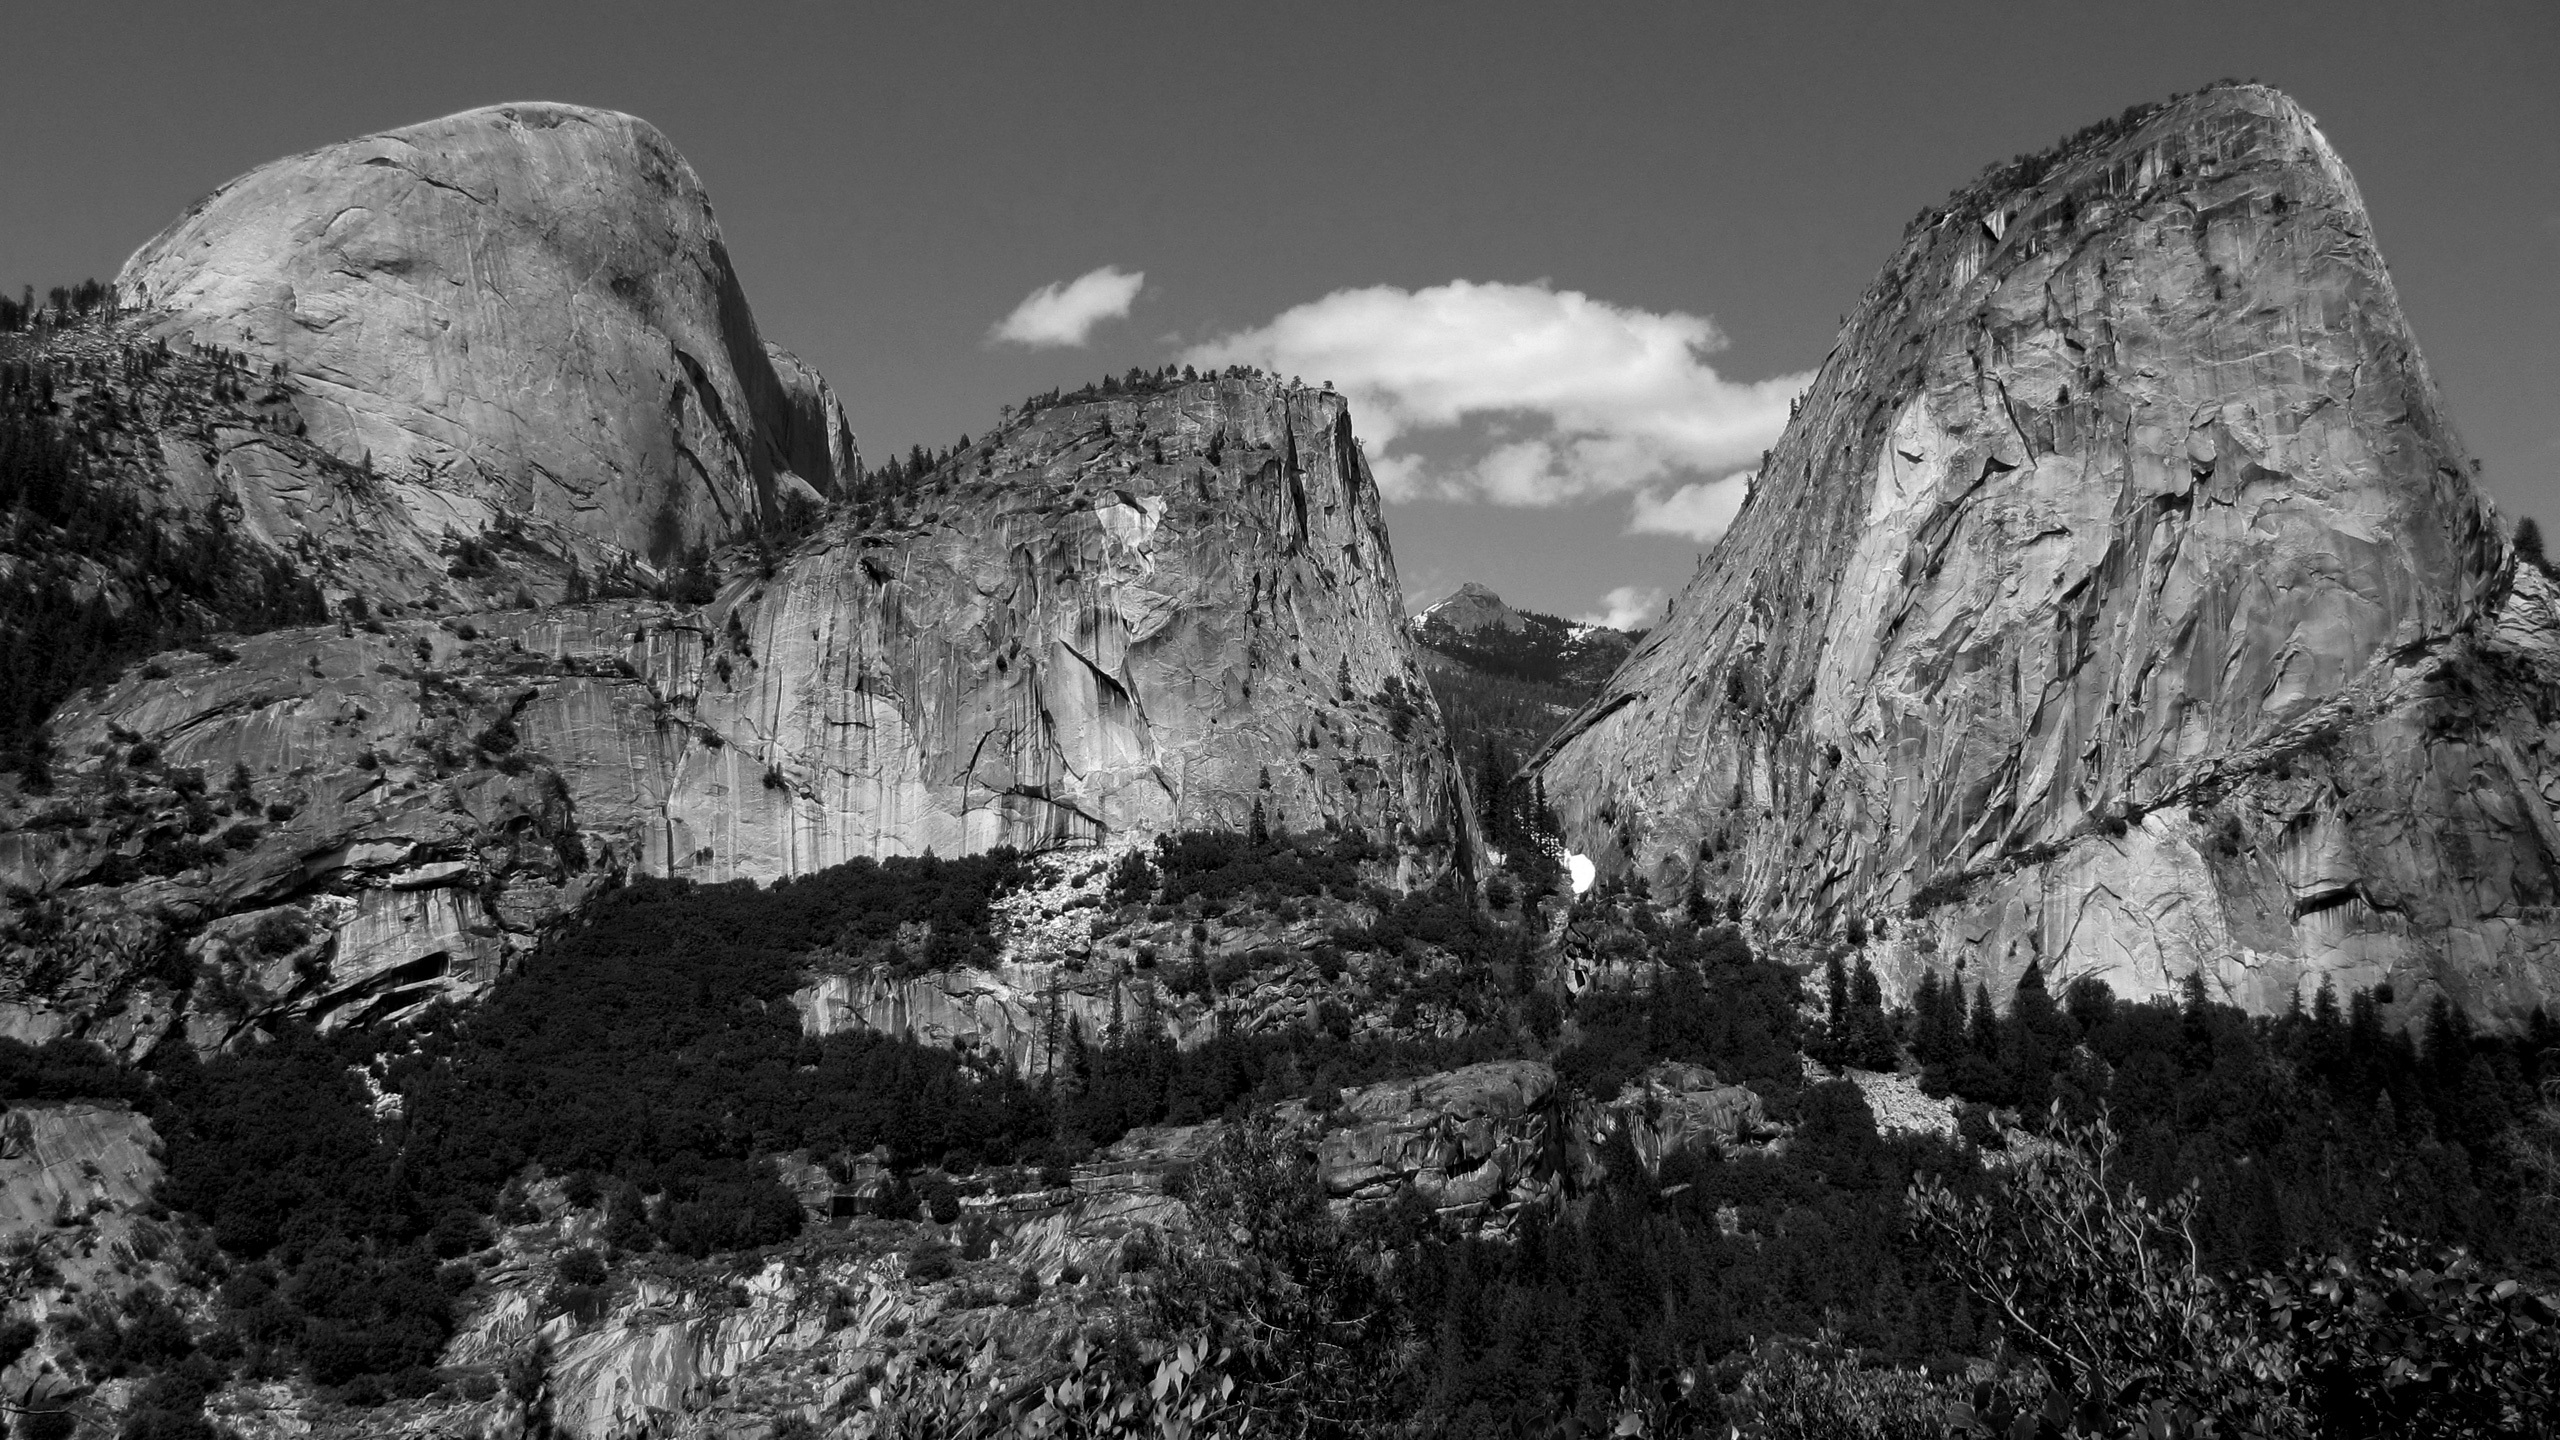 yosemite granite monoliths